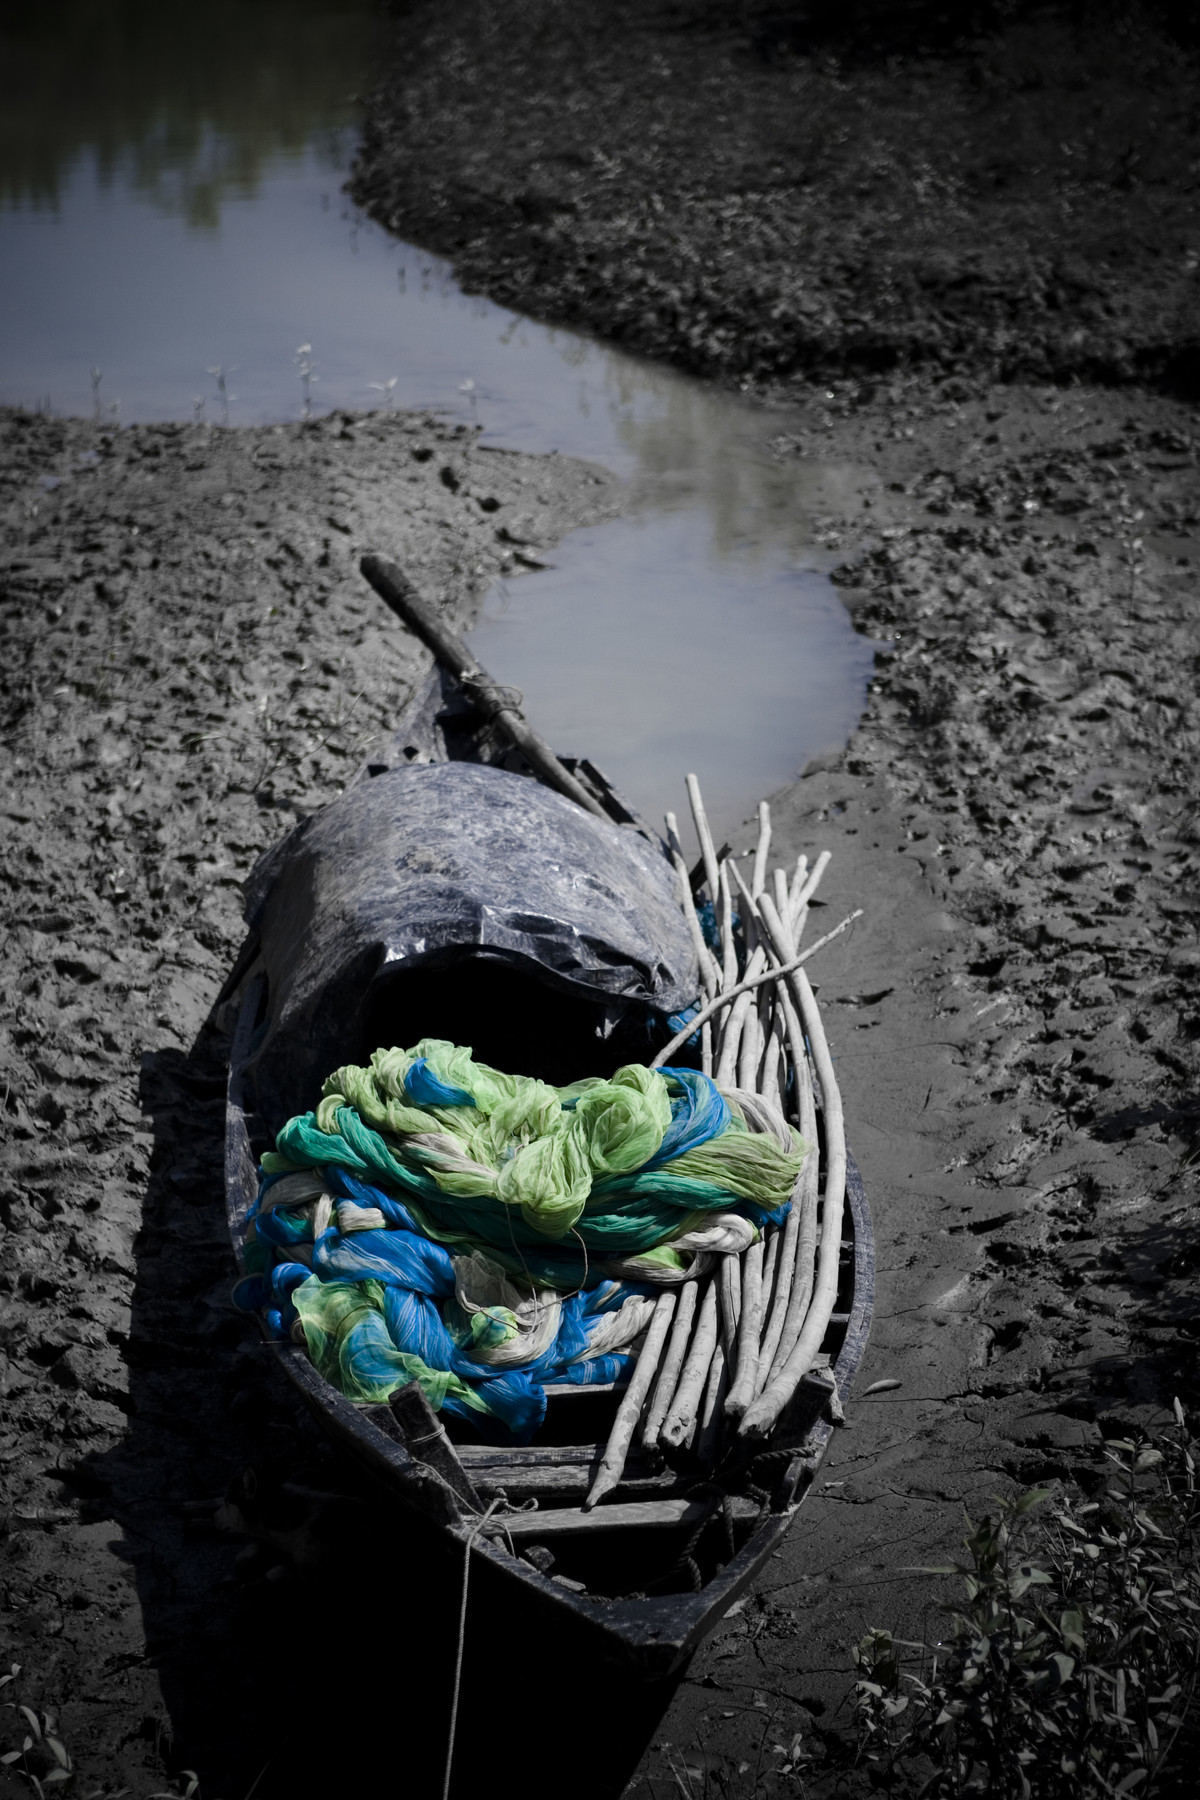 Fishing Boat by Gautam Vir Prashad, Image Photography, Giclee Print on Hahnemuhle Paper, Gray color